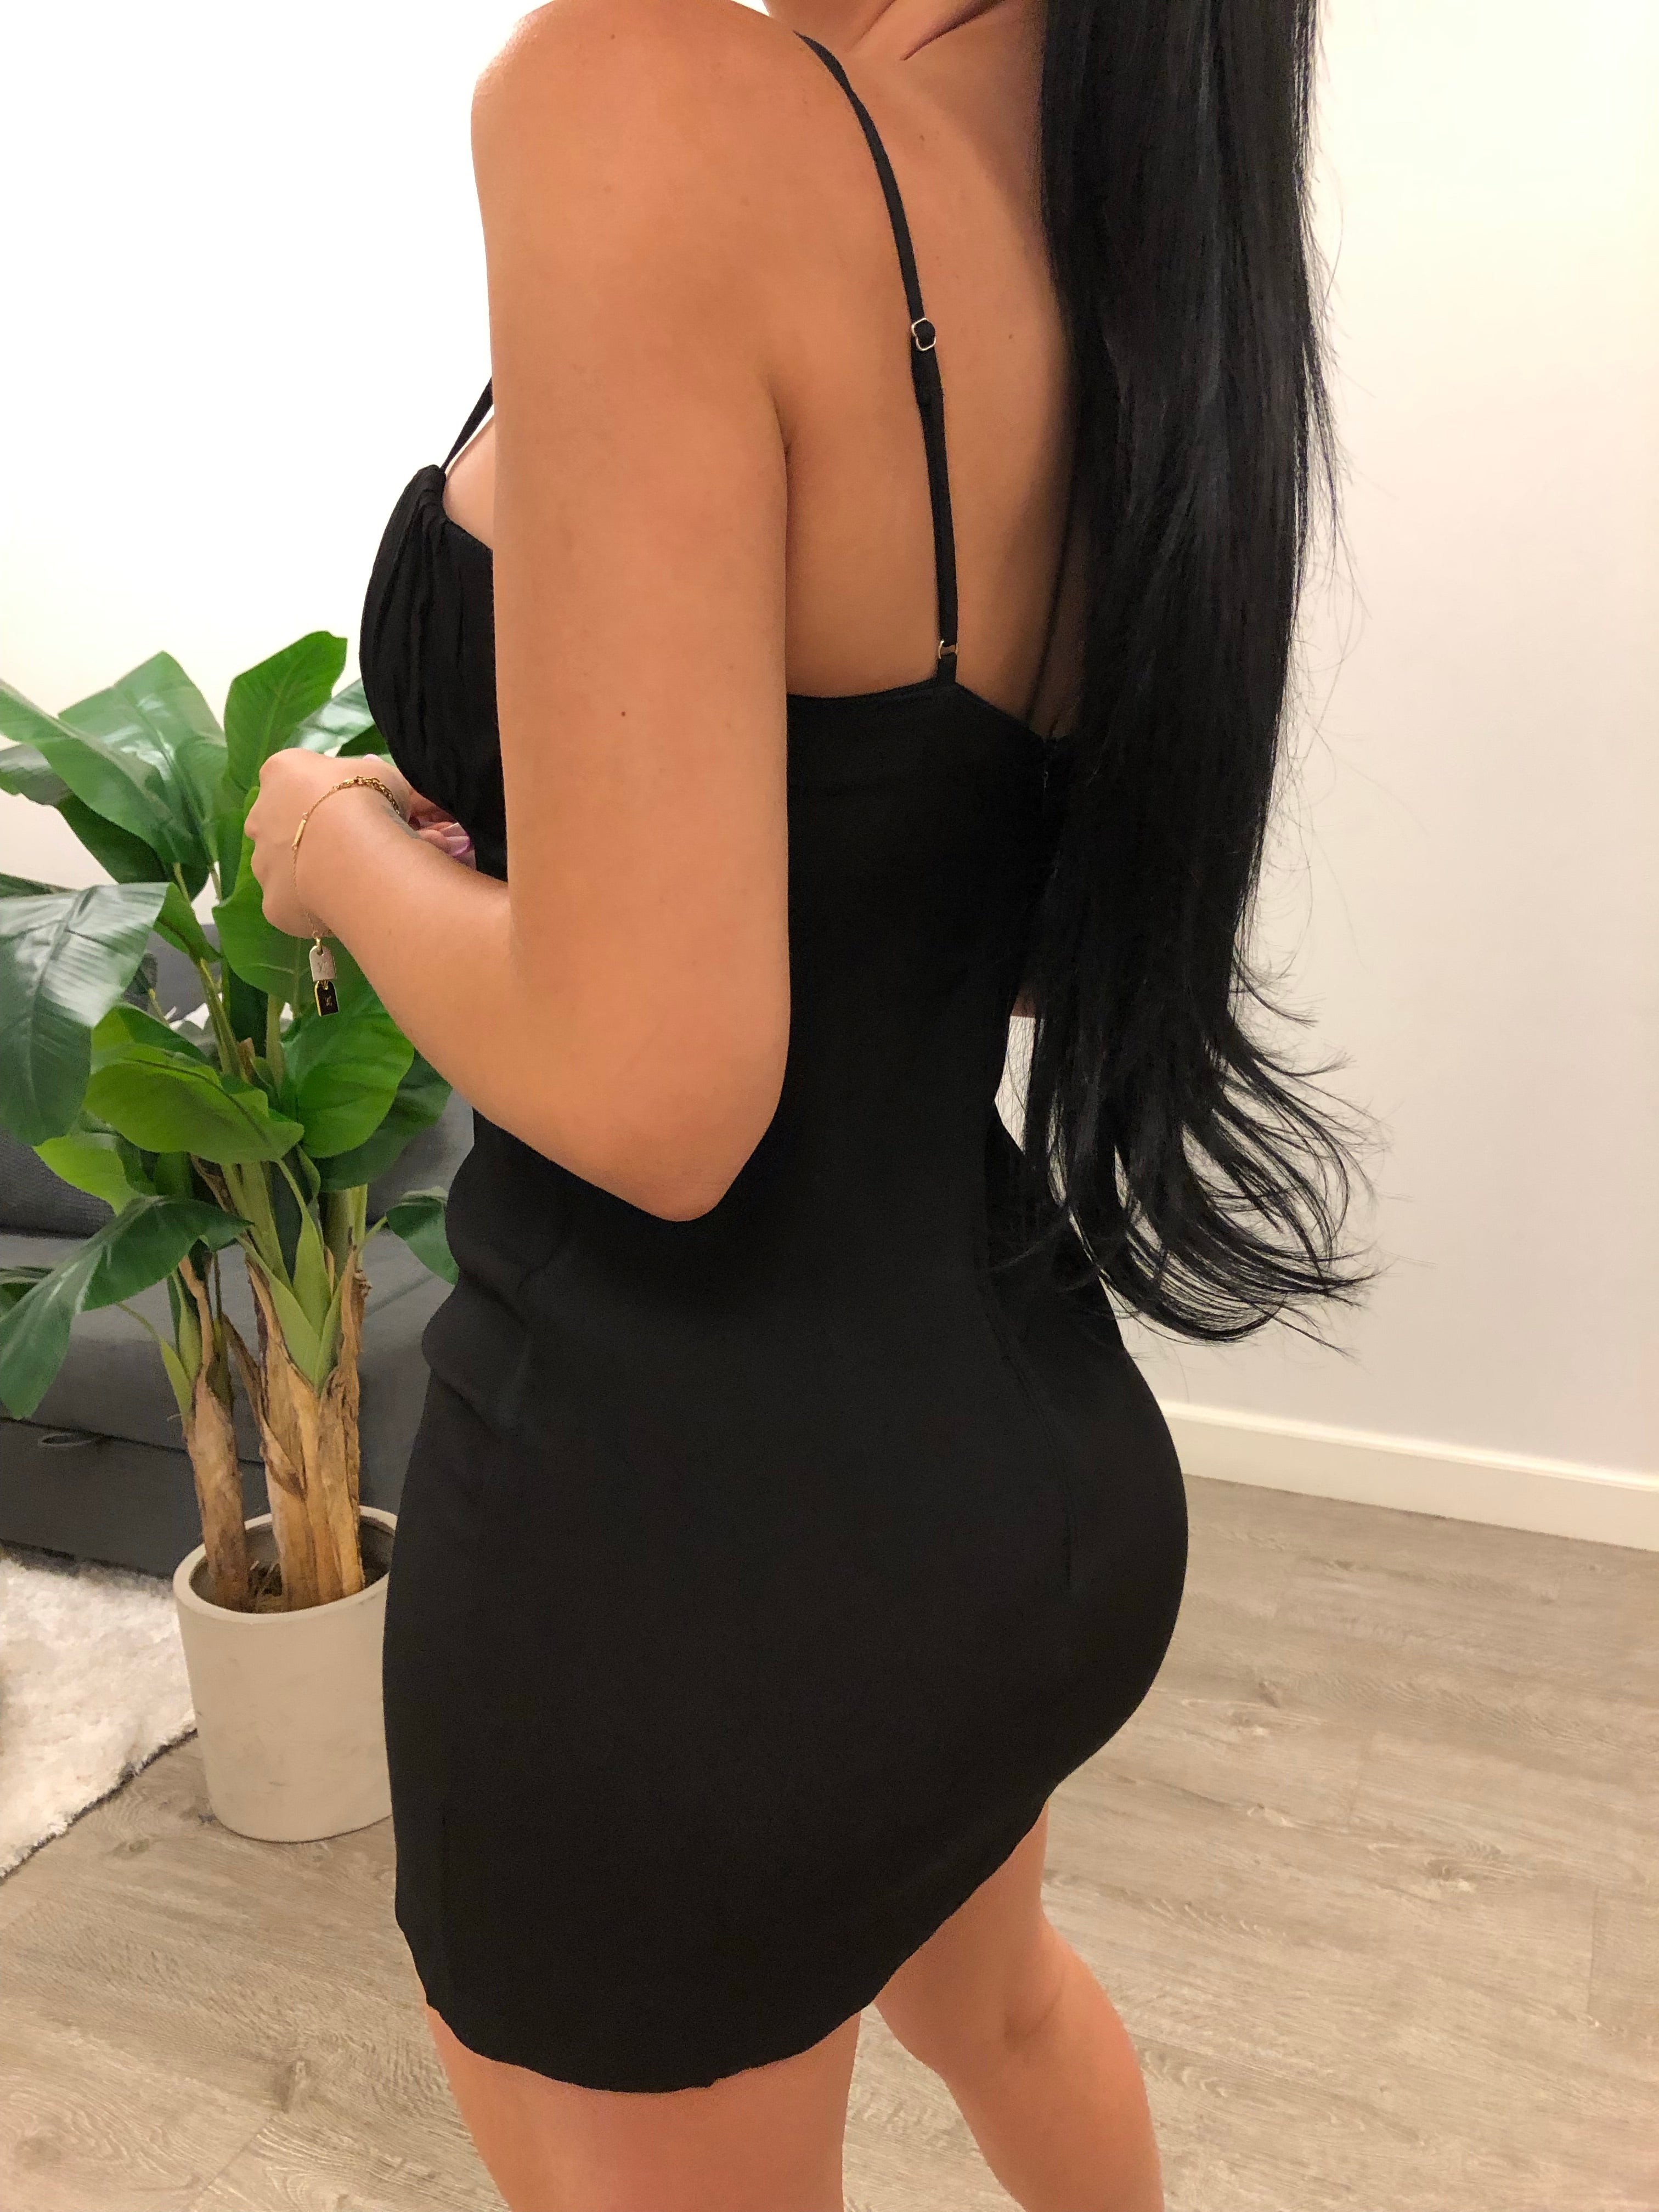 black color spaghetti strap dress with a short u shape to mid cleavage. dress is mid thigh length. has a small bow between cleavage and shows mid back